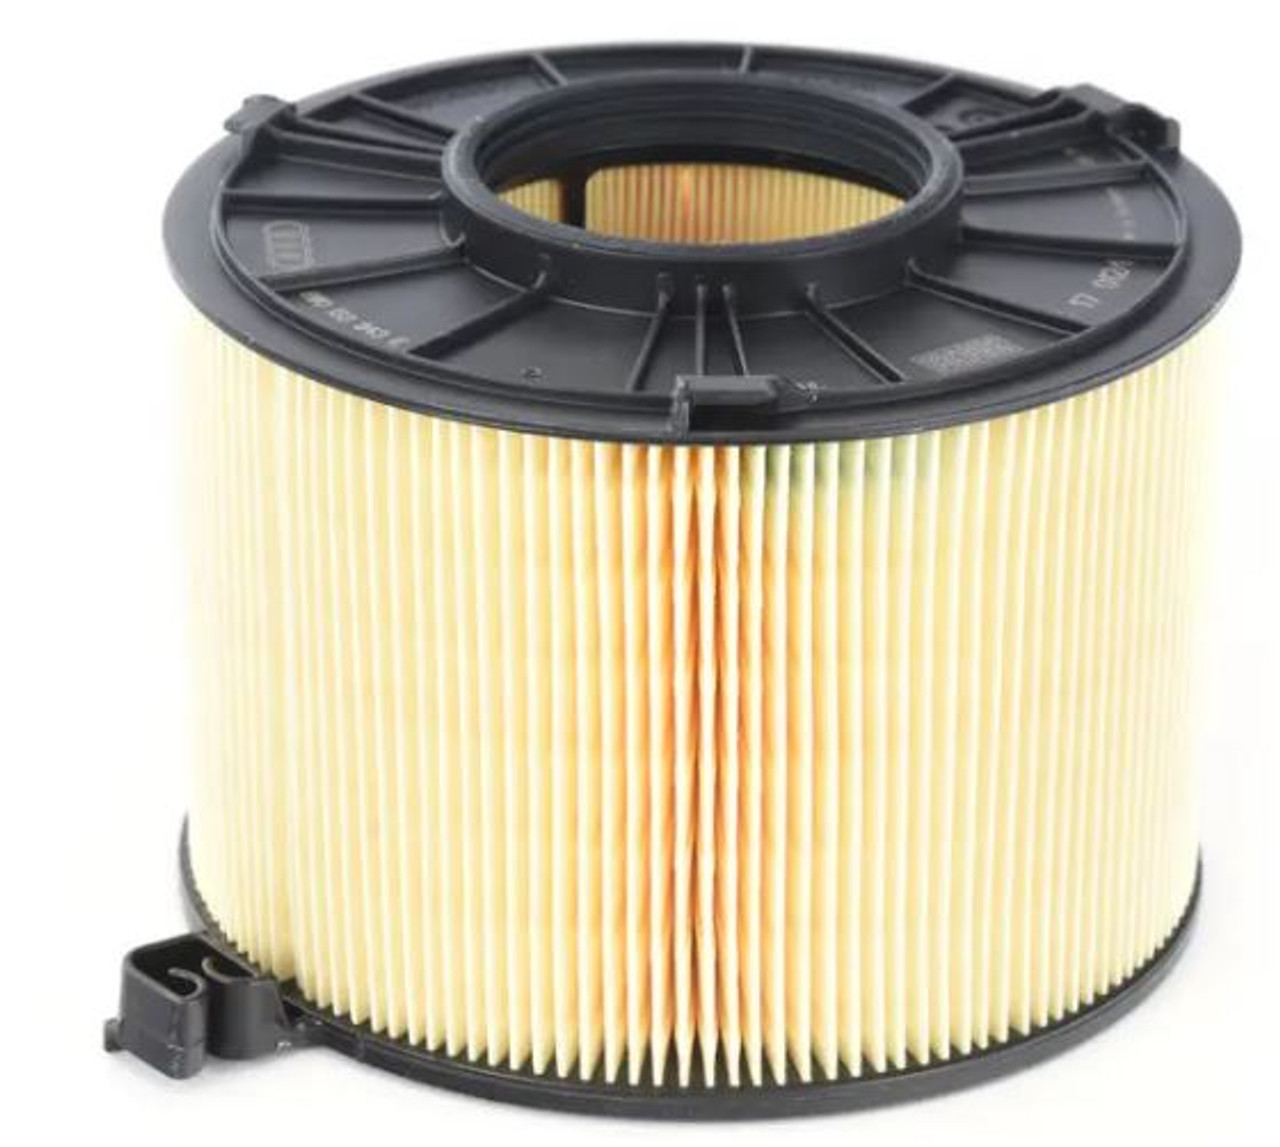 Genuine Audi Air Filter 8W0133843E